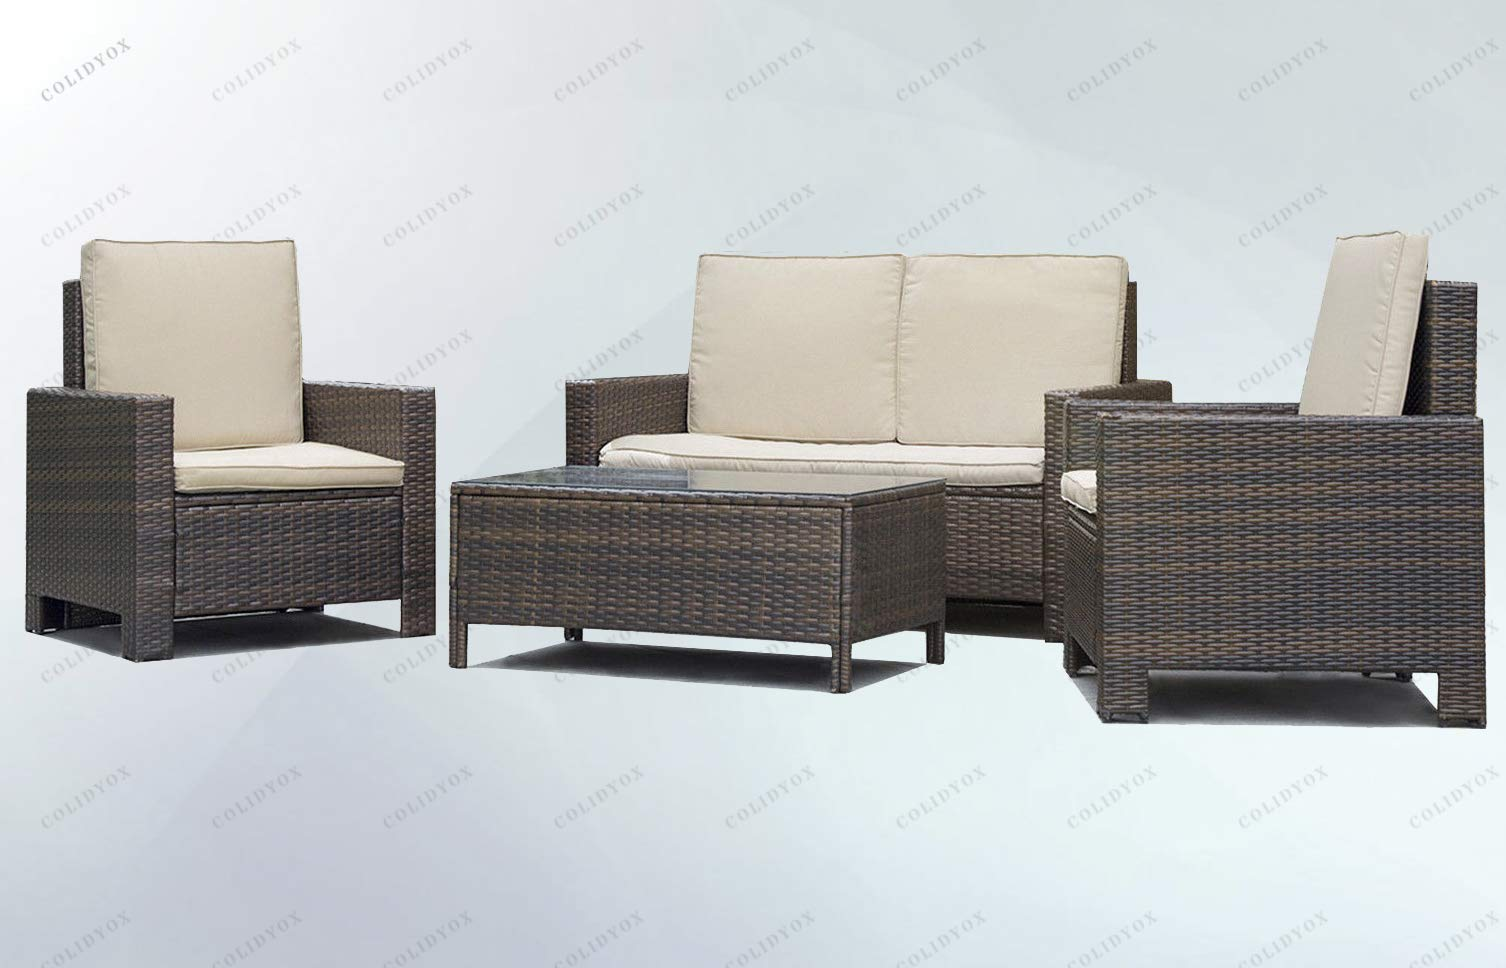 COLIDYOX___Outdoor Furniture Set,unused, unopened, Undamaged Item in its Original Packaging,Retail Store,Manufacturer in Non-Retail Packaging